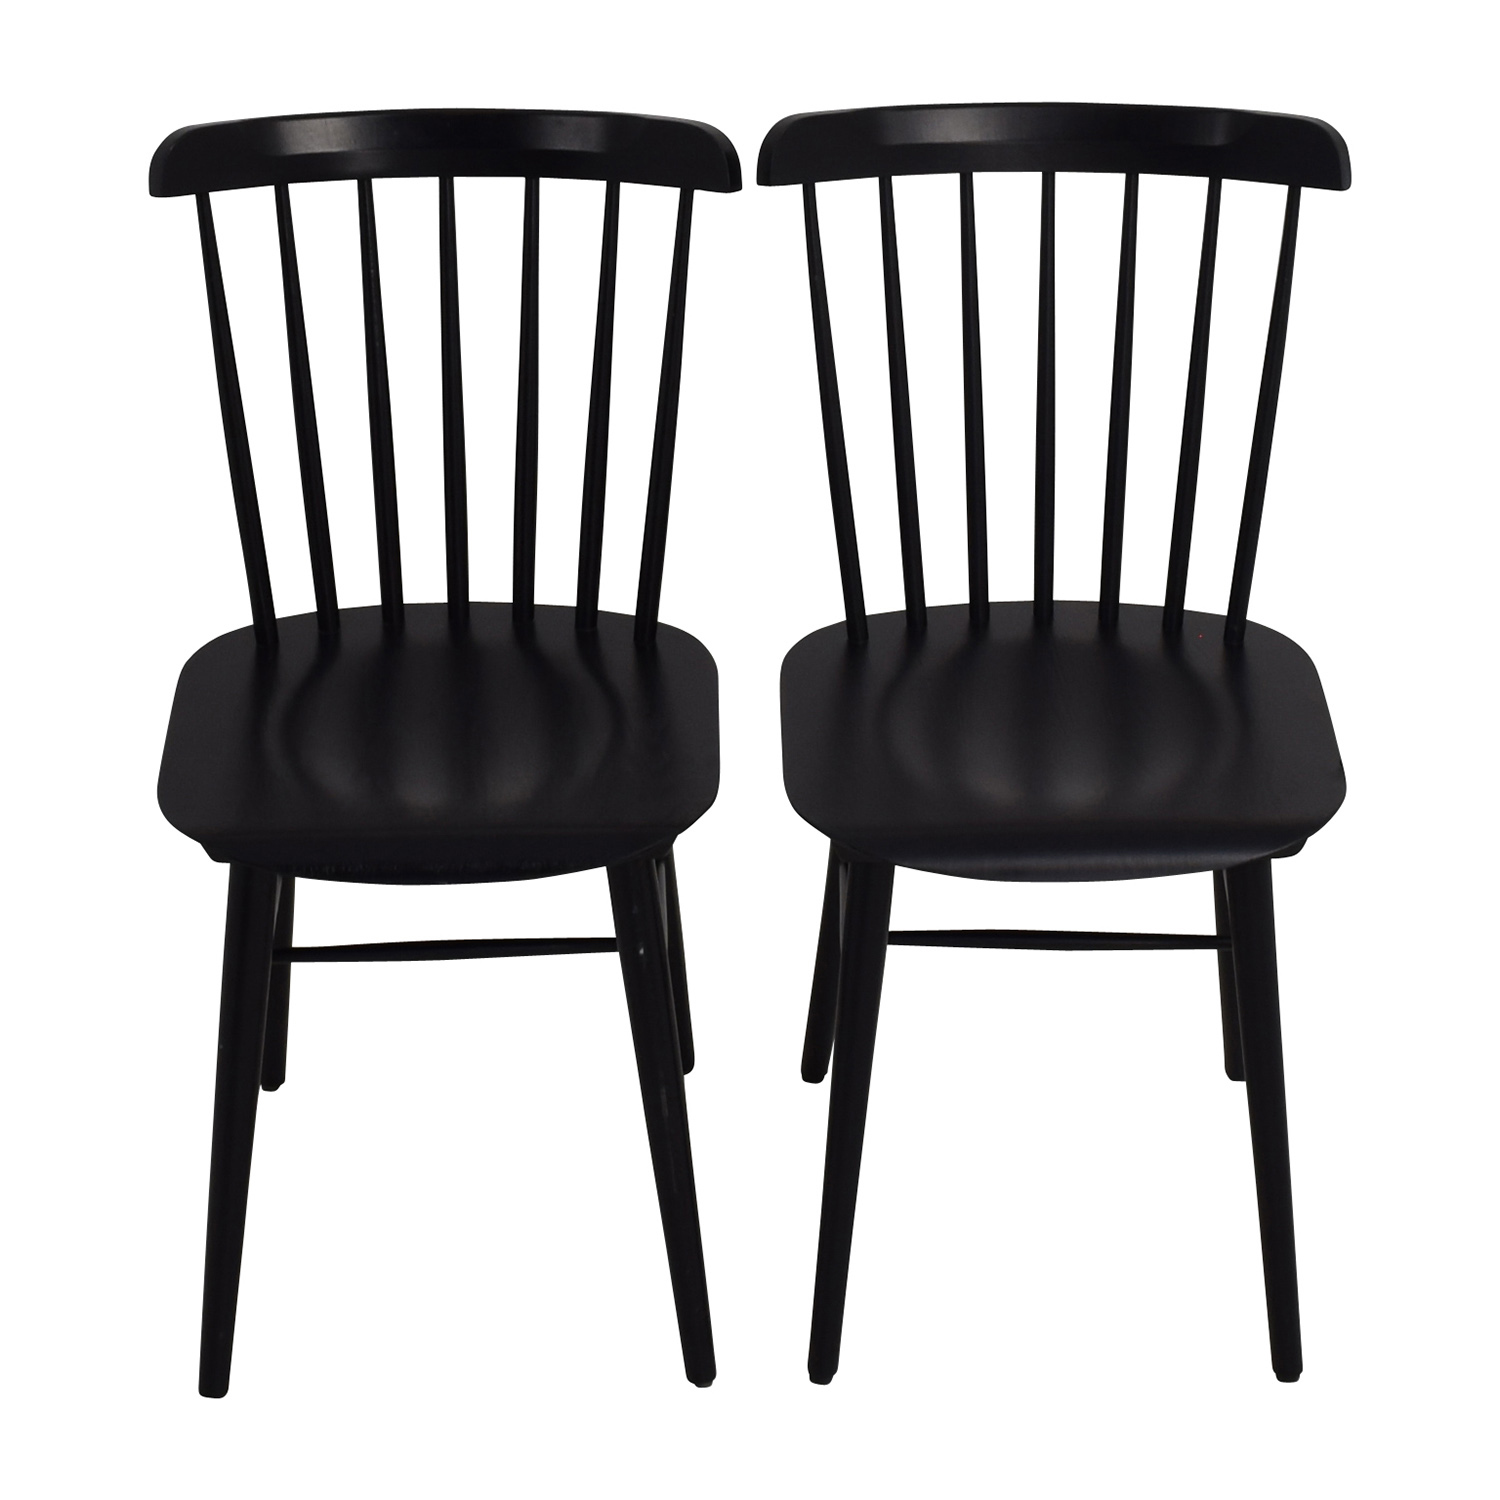 35% OFF Overstock Overstock White European Chairs Chairs